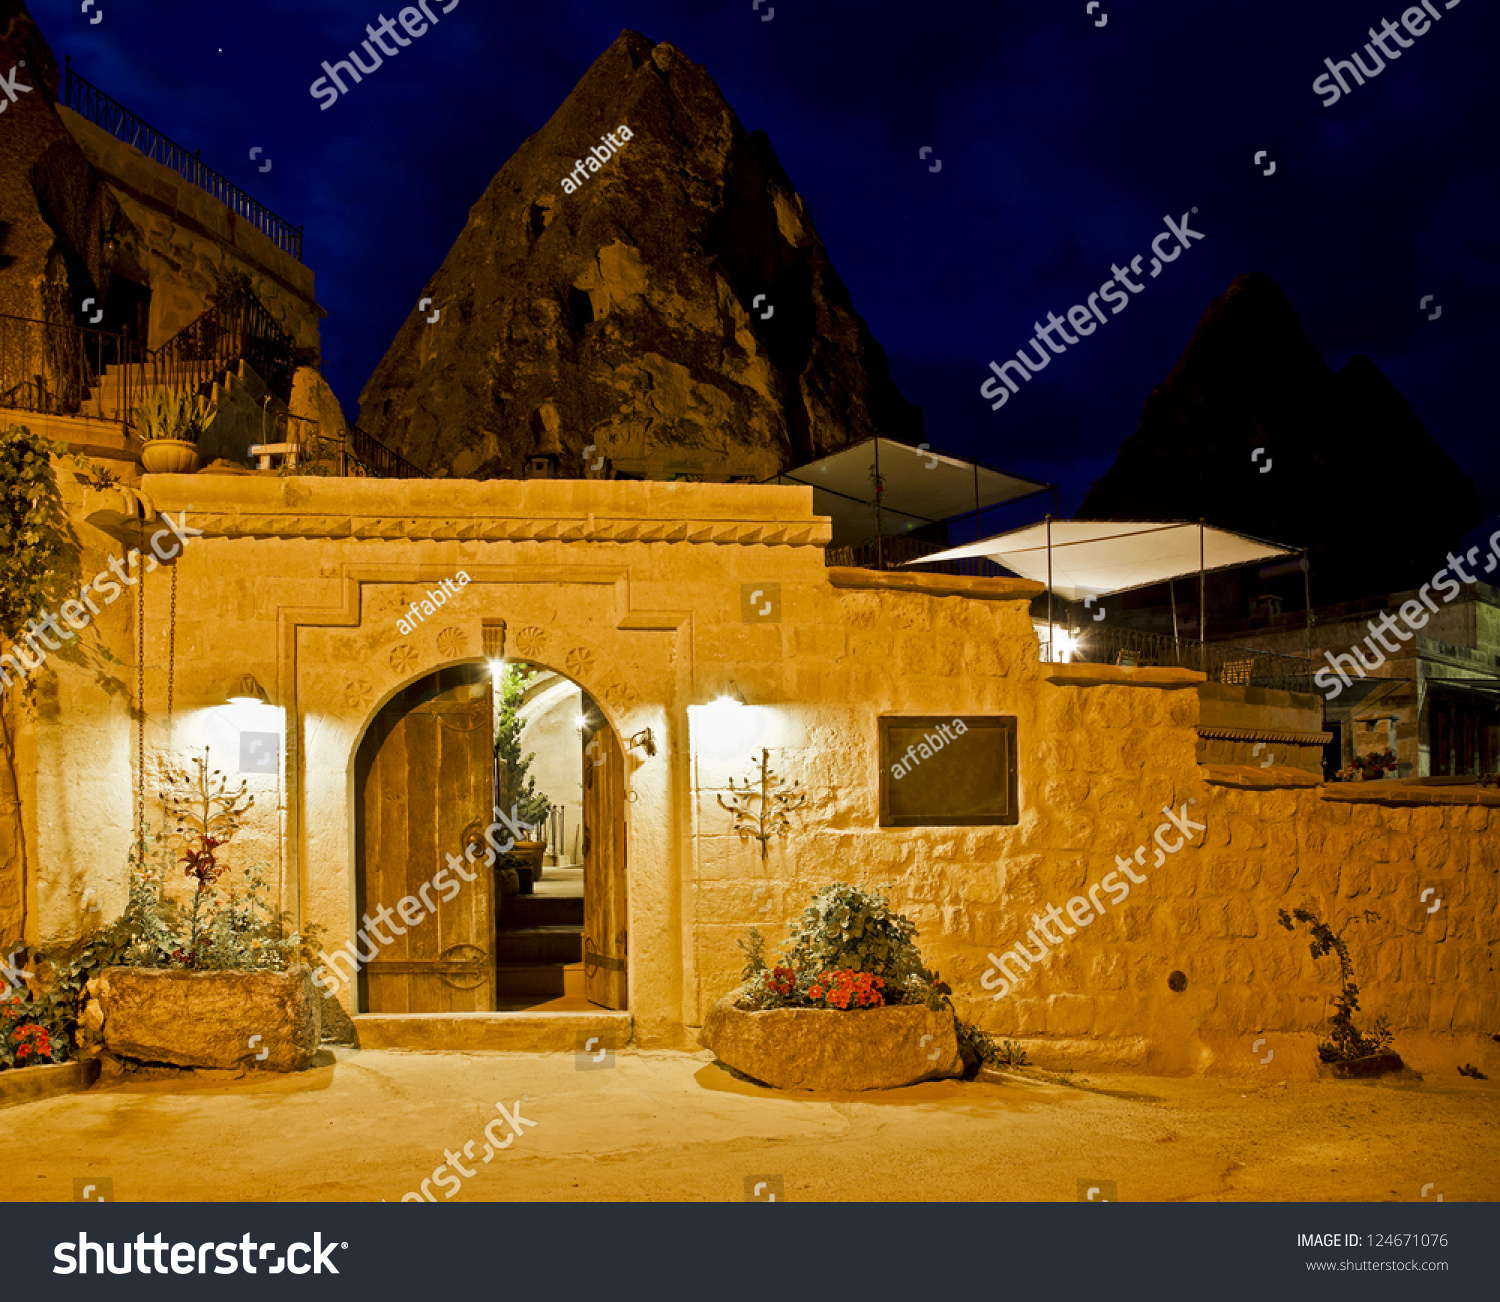 limestone cave residence converted to a boutique hotel goreme turkey night scene under street